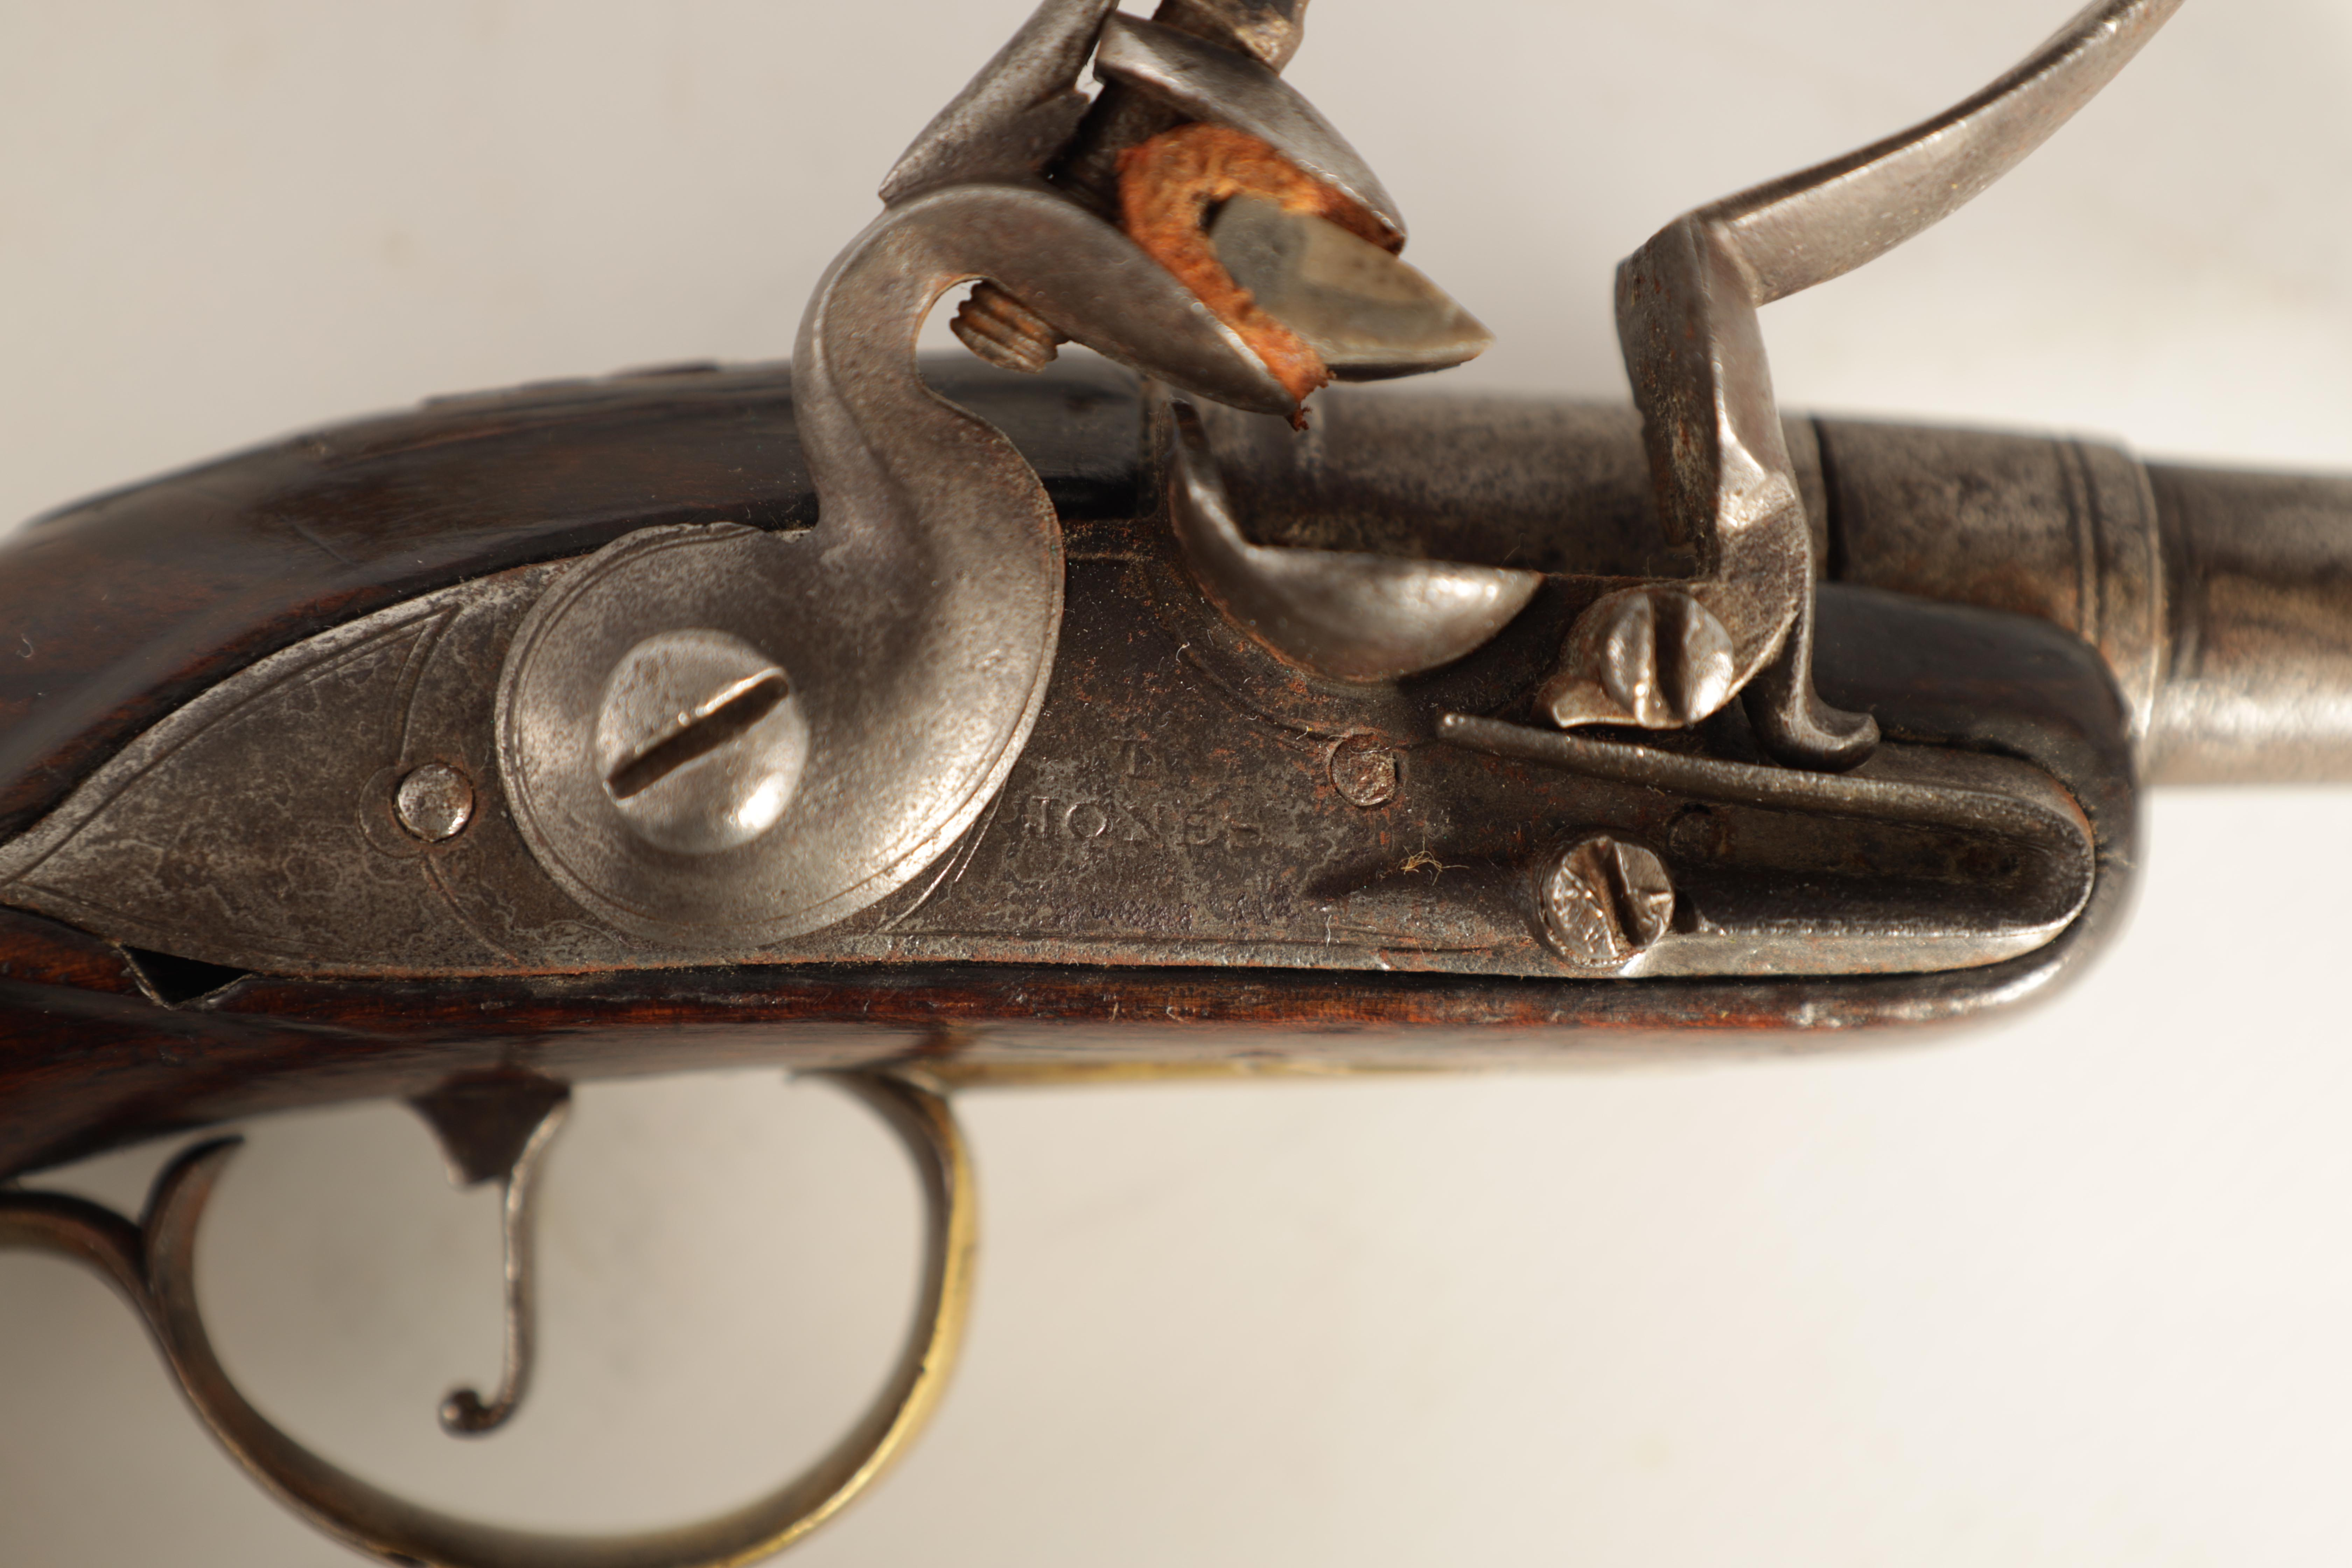 T. JONES. A PAIR OF EARLY 18TH CENTURY FLINTLOCK POCKET PISTOLS with turn-off cannon barrel, - Image 4 of 14